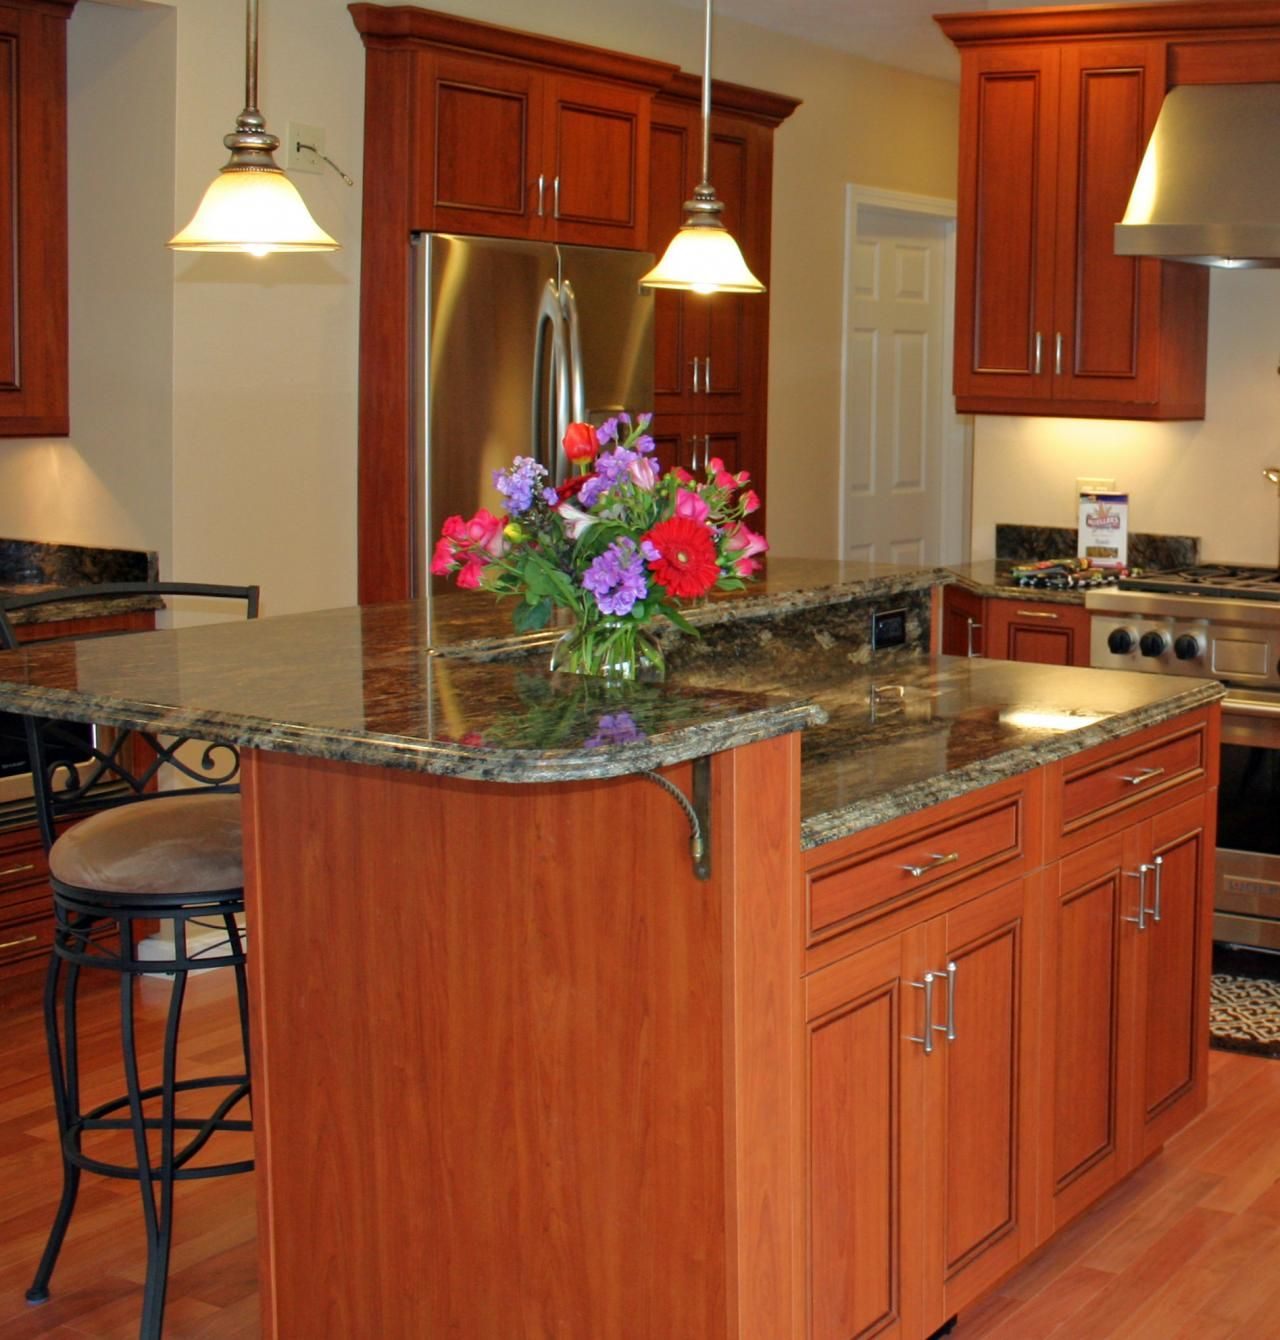 My Business Kikkiikitchenkitchen Island Gallery Kitchen Island With Seating Round Kitchen Island Kitchen Interior